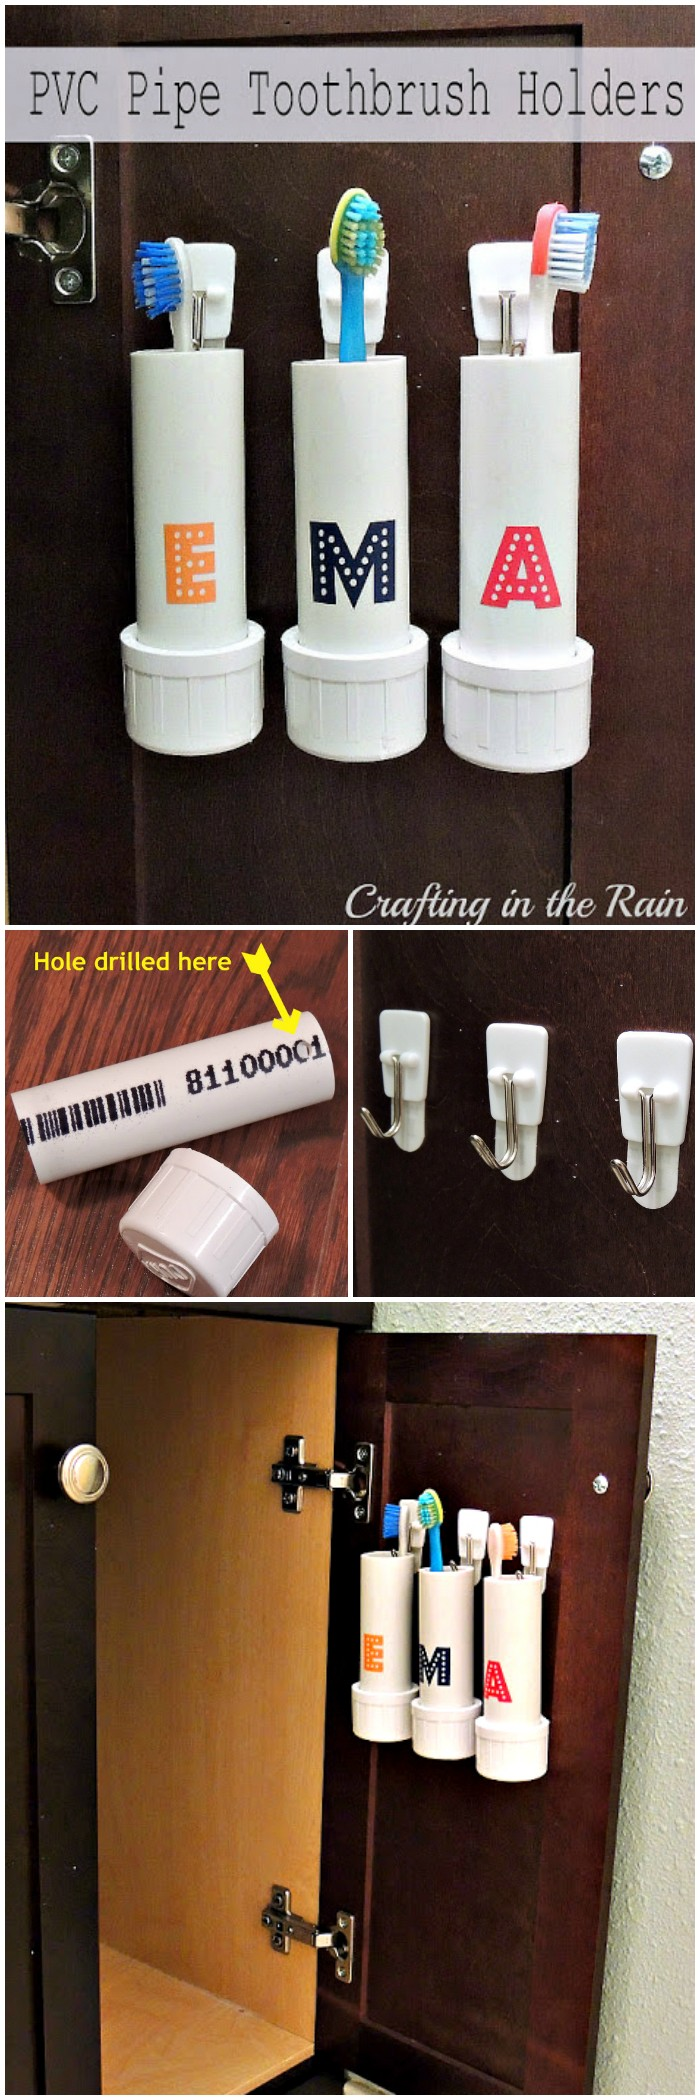 25 interesting DIY bathroom ideas on your budget PVC Pipe Toothbrush Holders